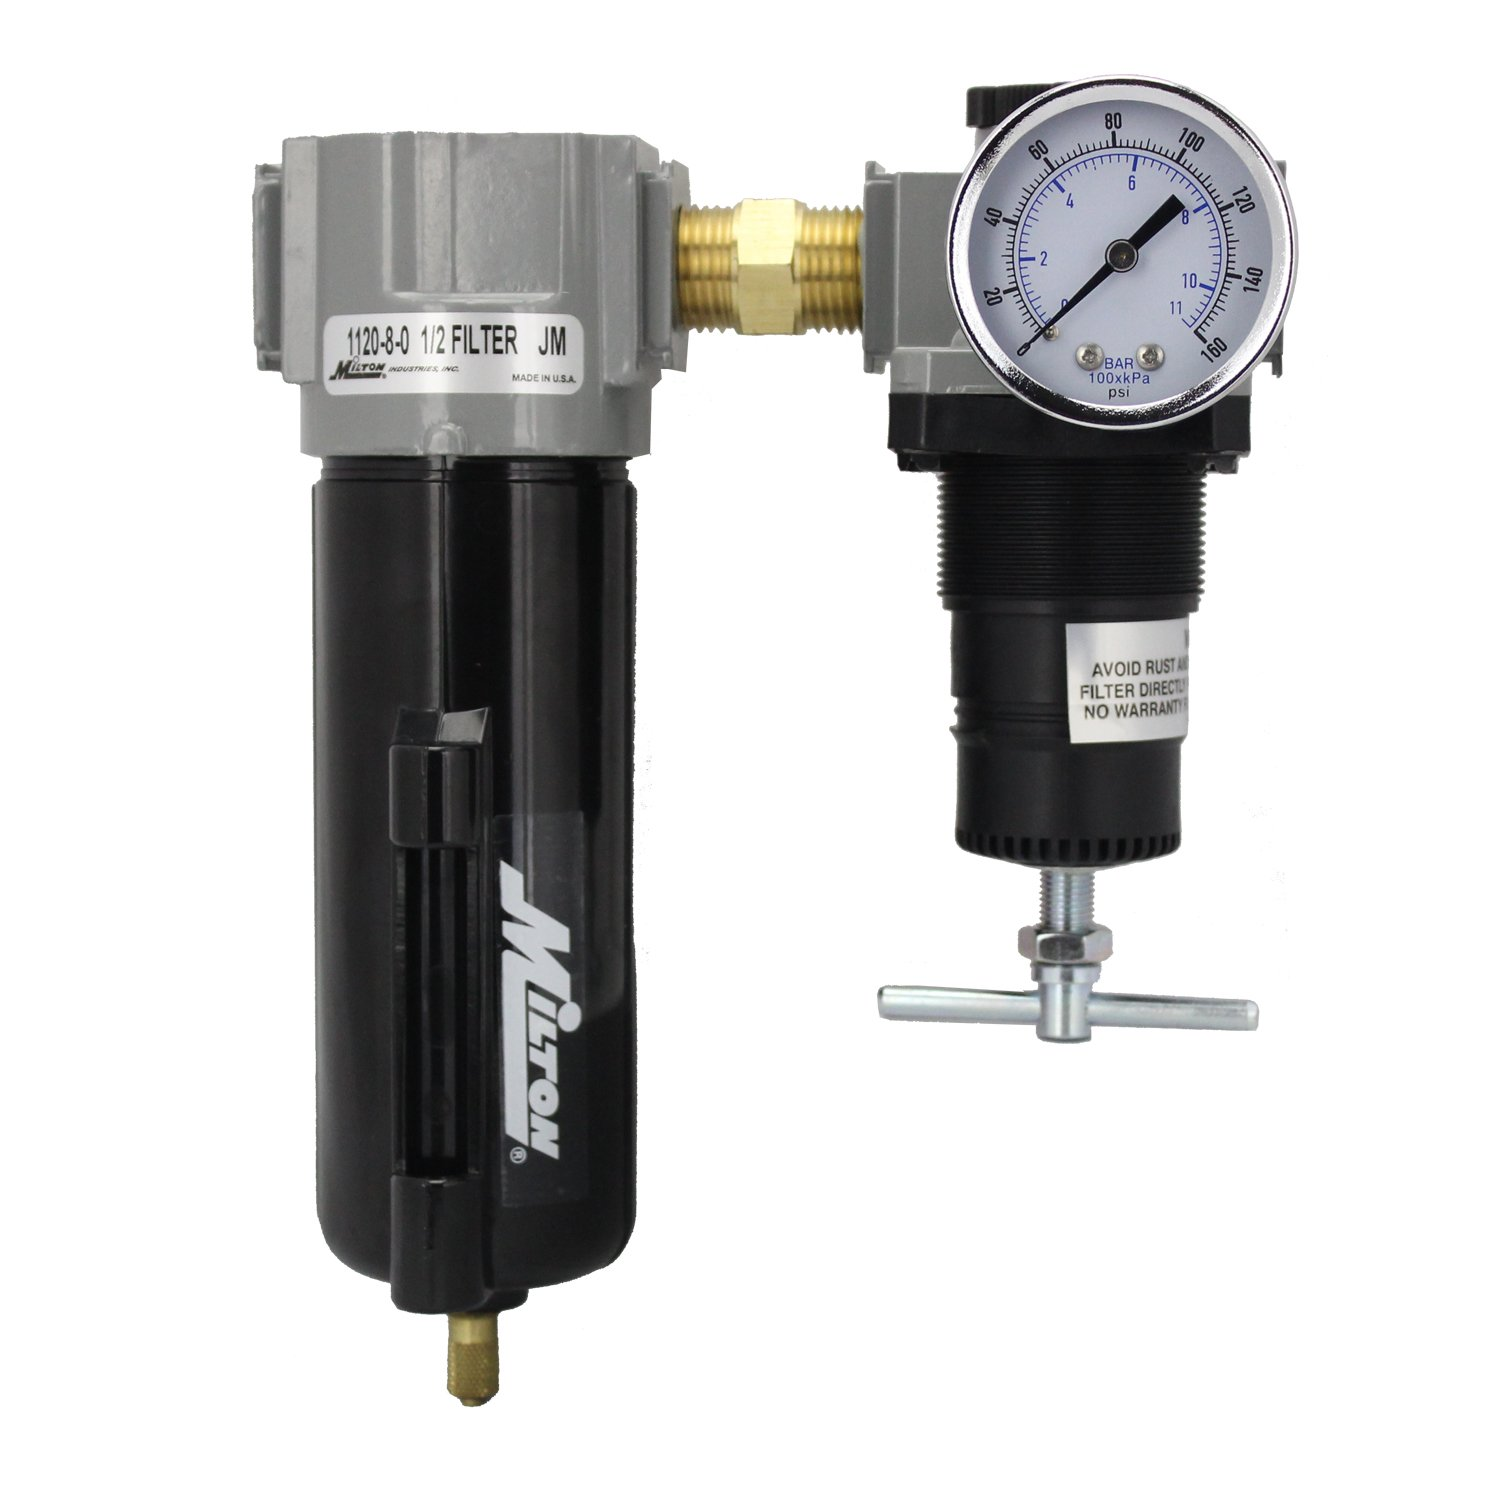 Milton 1108 1/2-Inch Filter and Regulator Duo Milton 1108 1/2 Filter and Regulator Duo